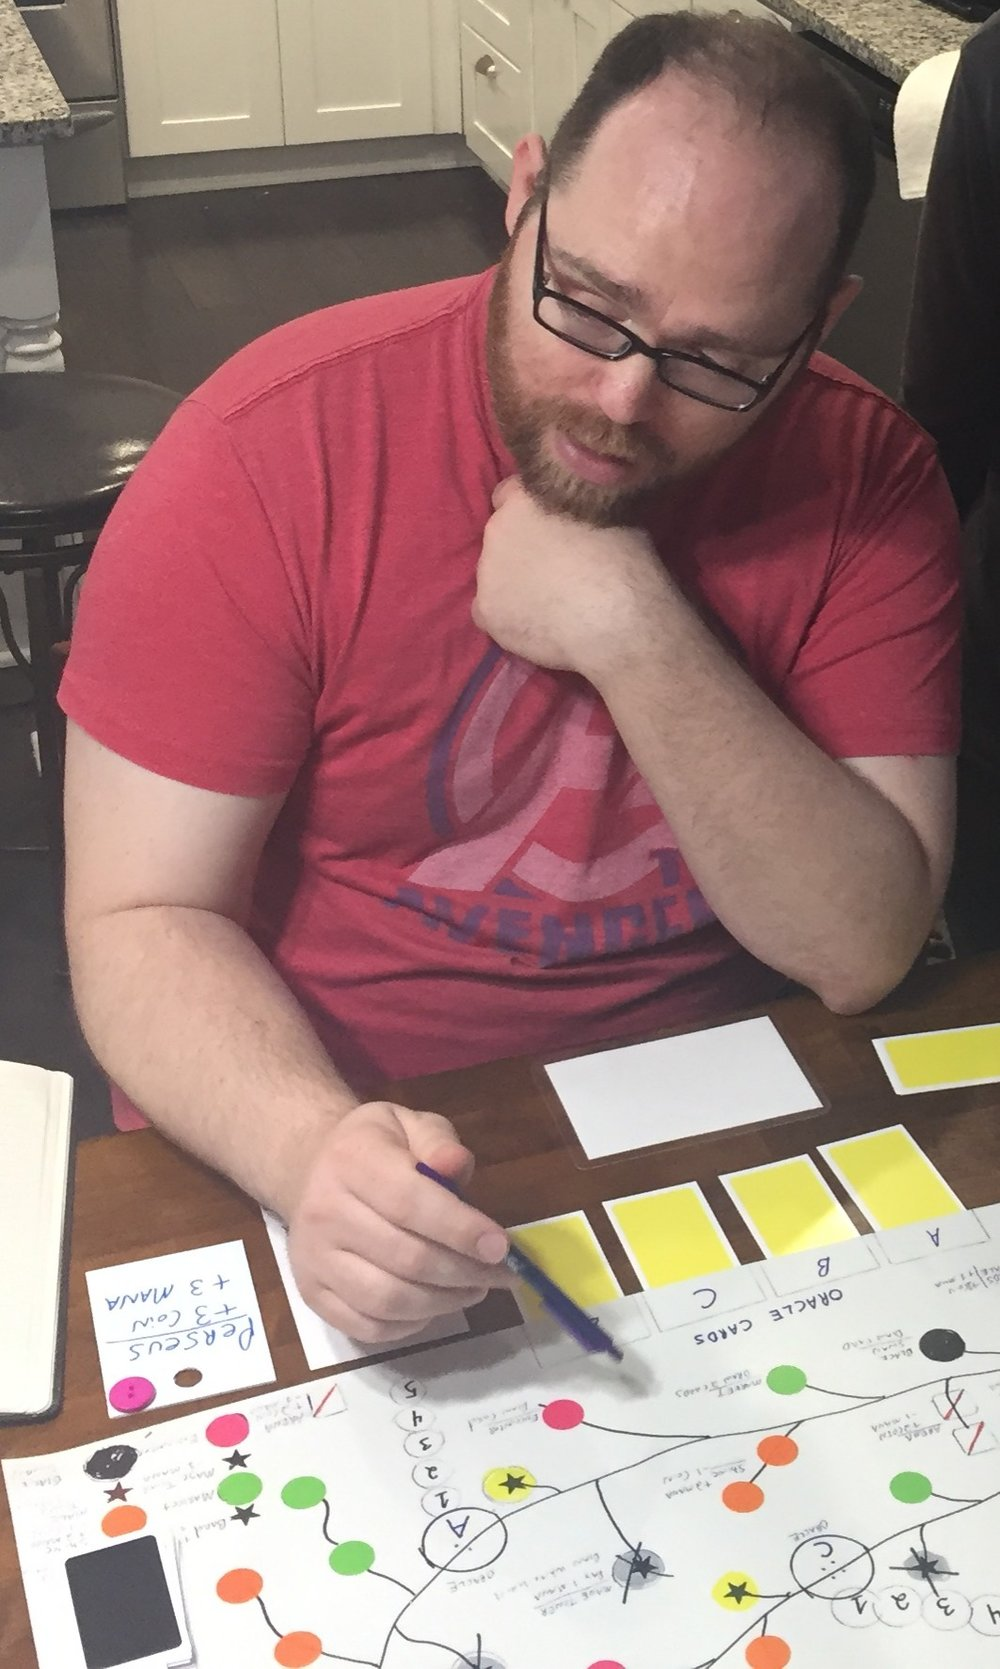 JR HONEYCUTT, PLAYTESTING PARADISE LOST DURING THEIR ATLANTA RETREAT EARLY 2018 (Waitress Games)